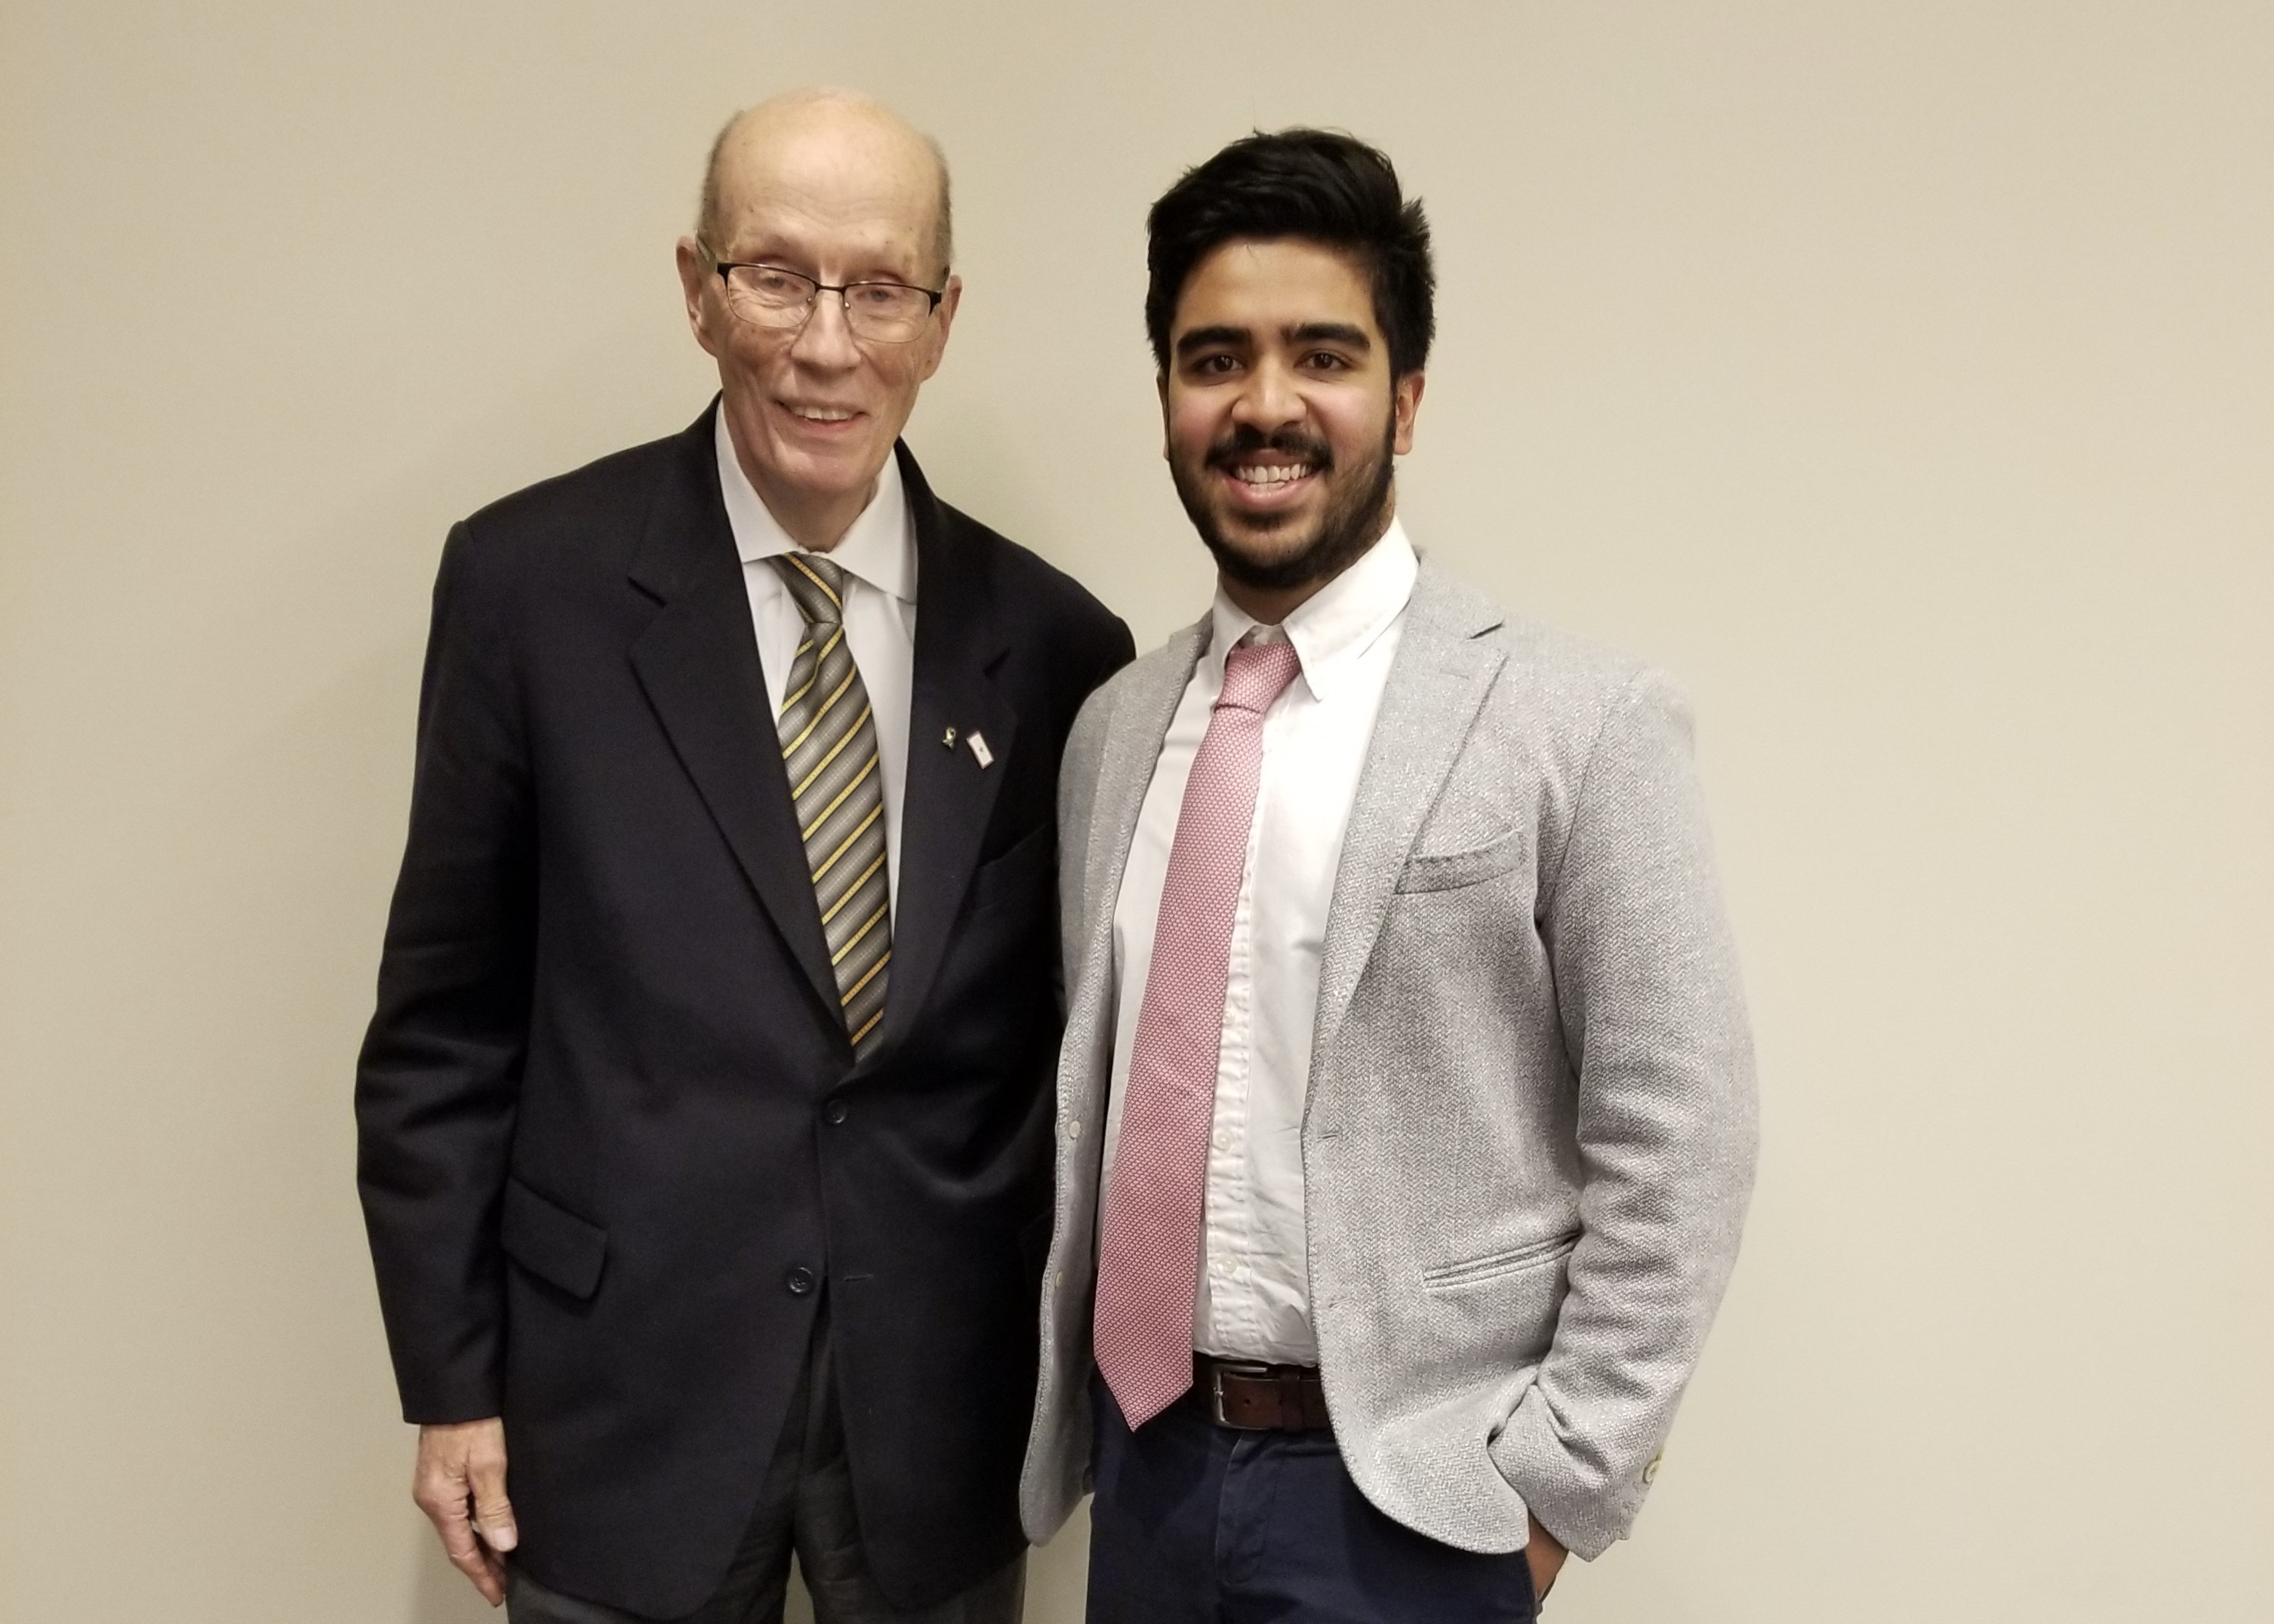 Professor Paul Schroeder with his advisee Sahaam Mirza